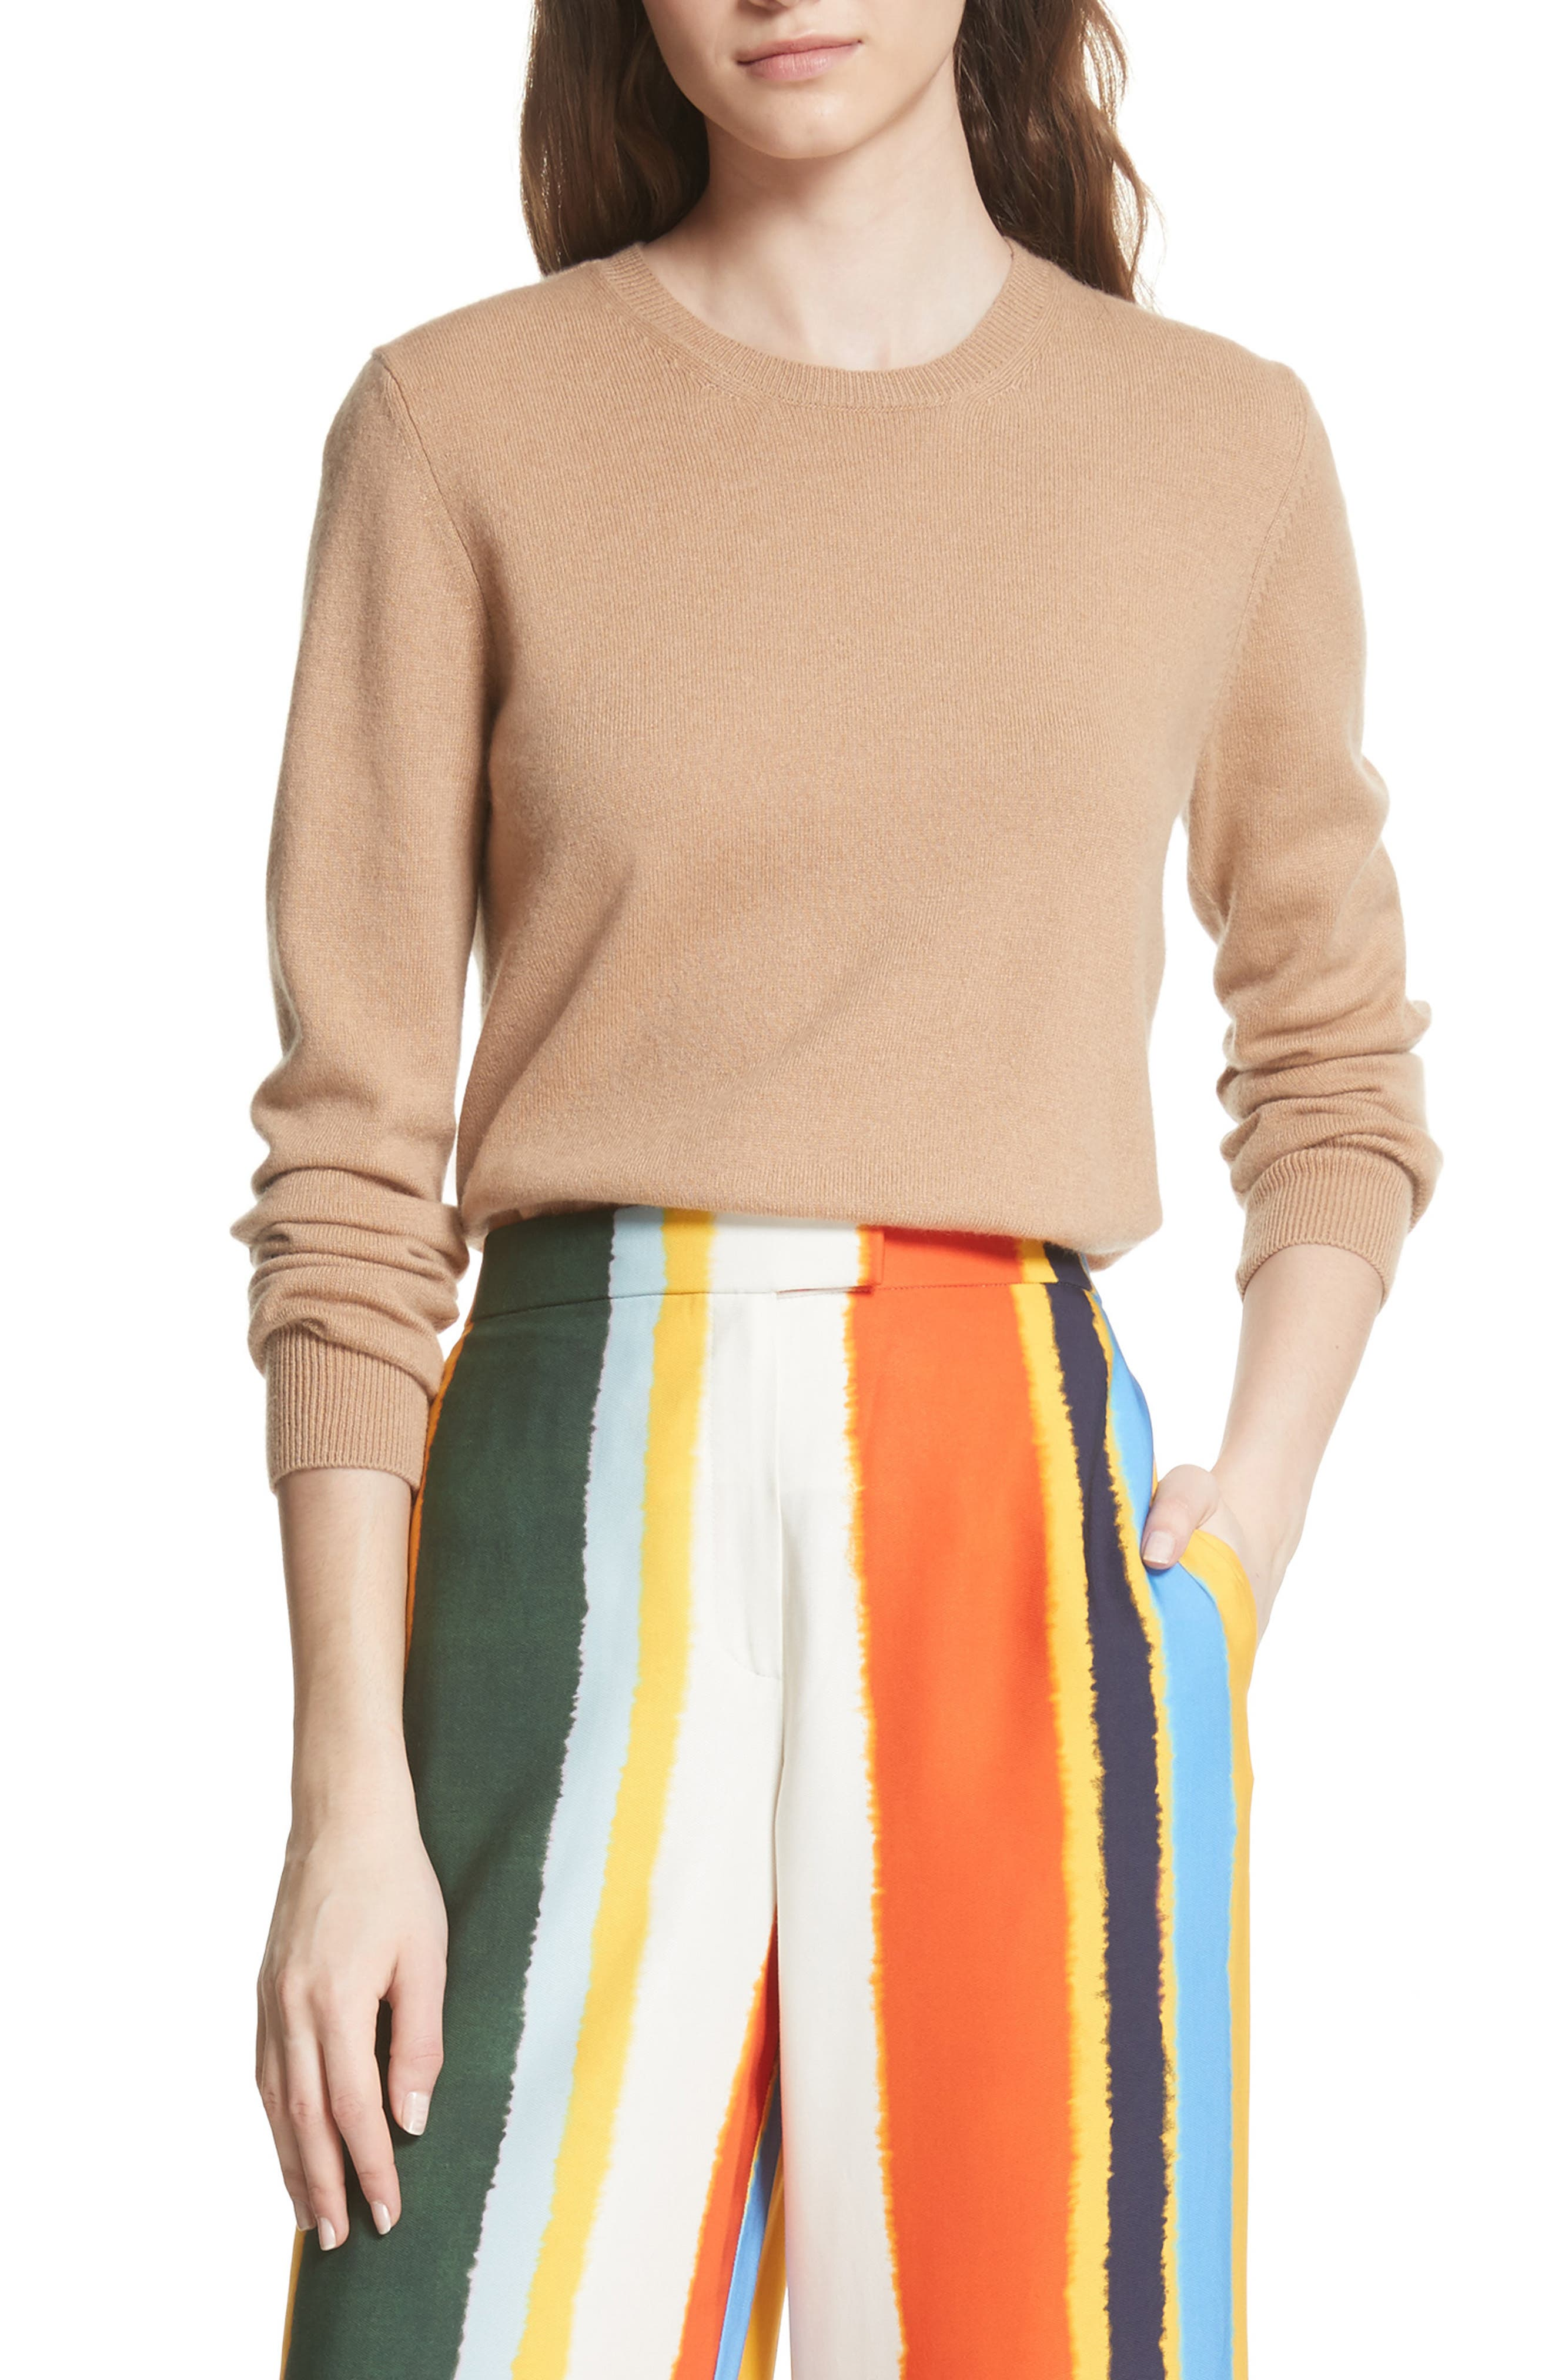 Bella Cashmere Sweater,                             Main thumbnail 1, color,                             235